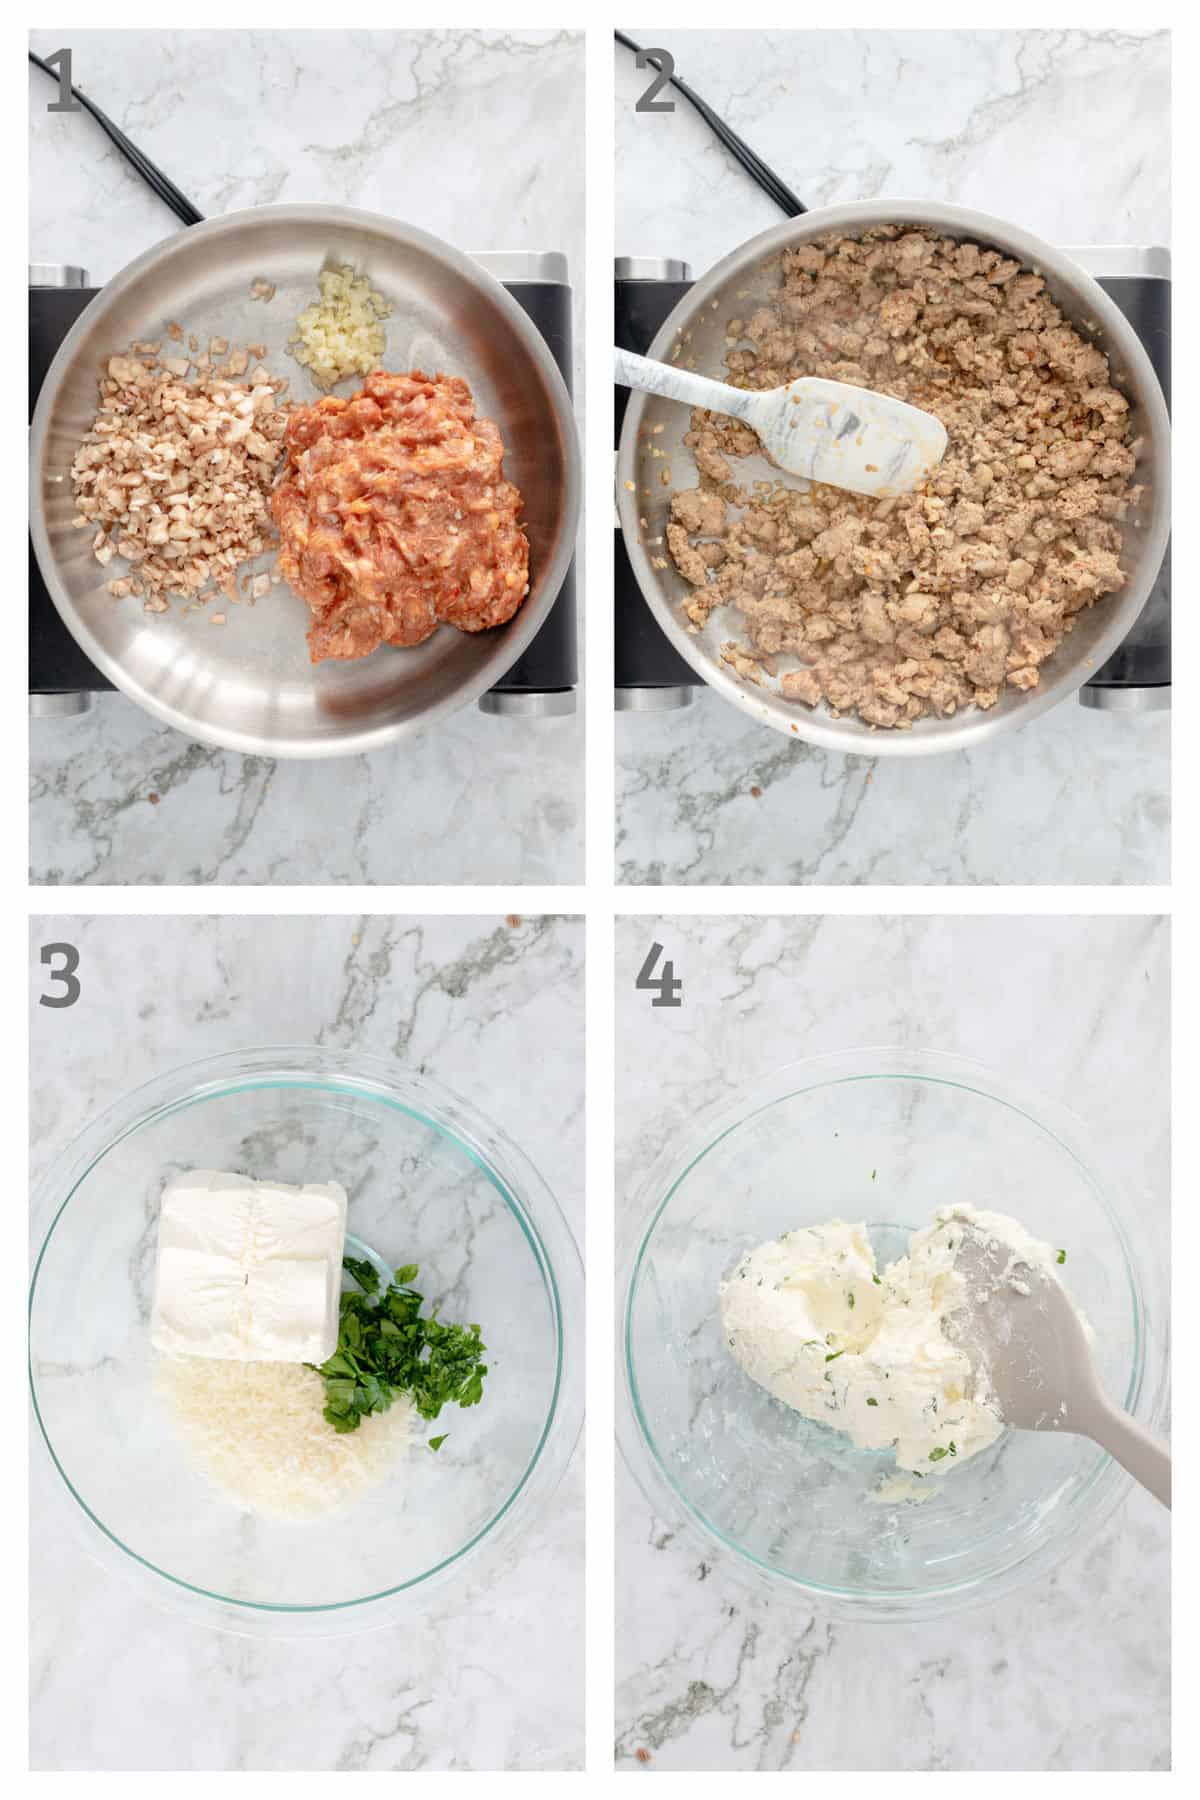 Step by Step Instructions for making Keto Sausage Stuffed Mushroom